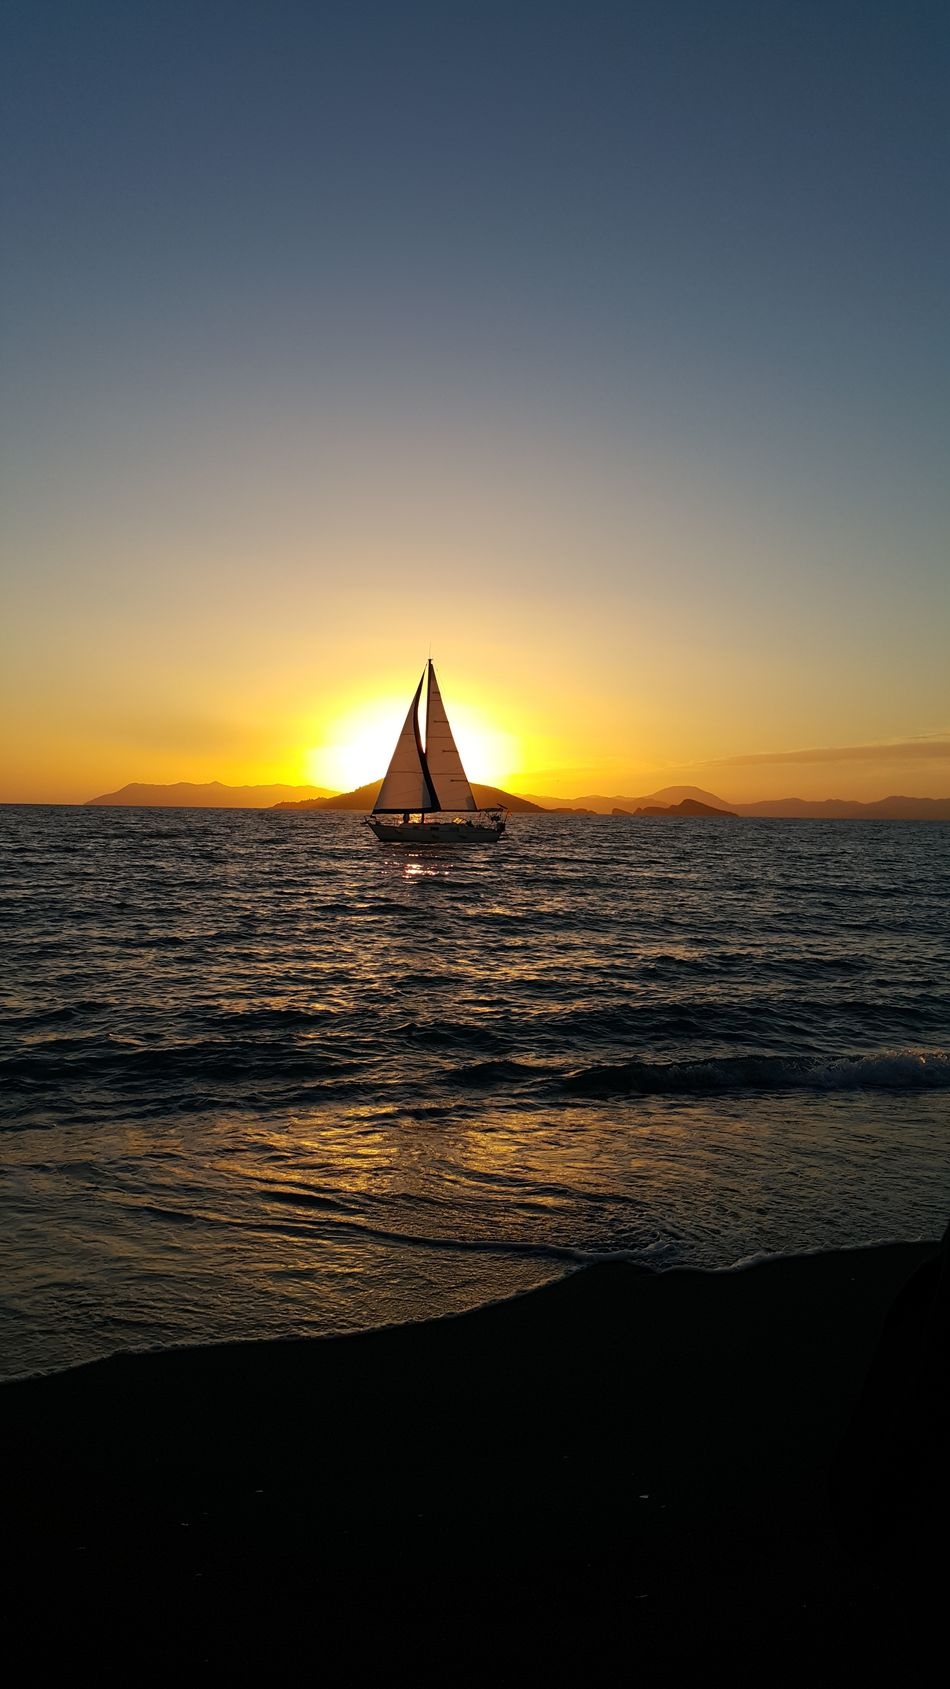 Nofilter Sailing Boat Sea And Sky Sunset_collection Simple Photography My Winter Favorites Having Fun Cloudy Skyporn Living By The Lake Populer Photos Showcase March Hello World Taking Photos Beach Life Beach Photography Fethiye Calisbeach Tadaa Community